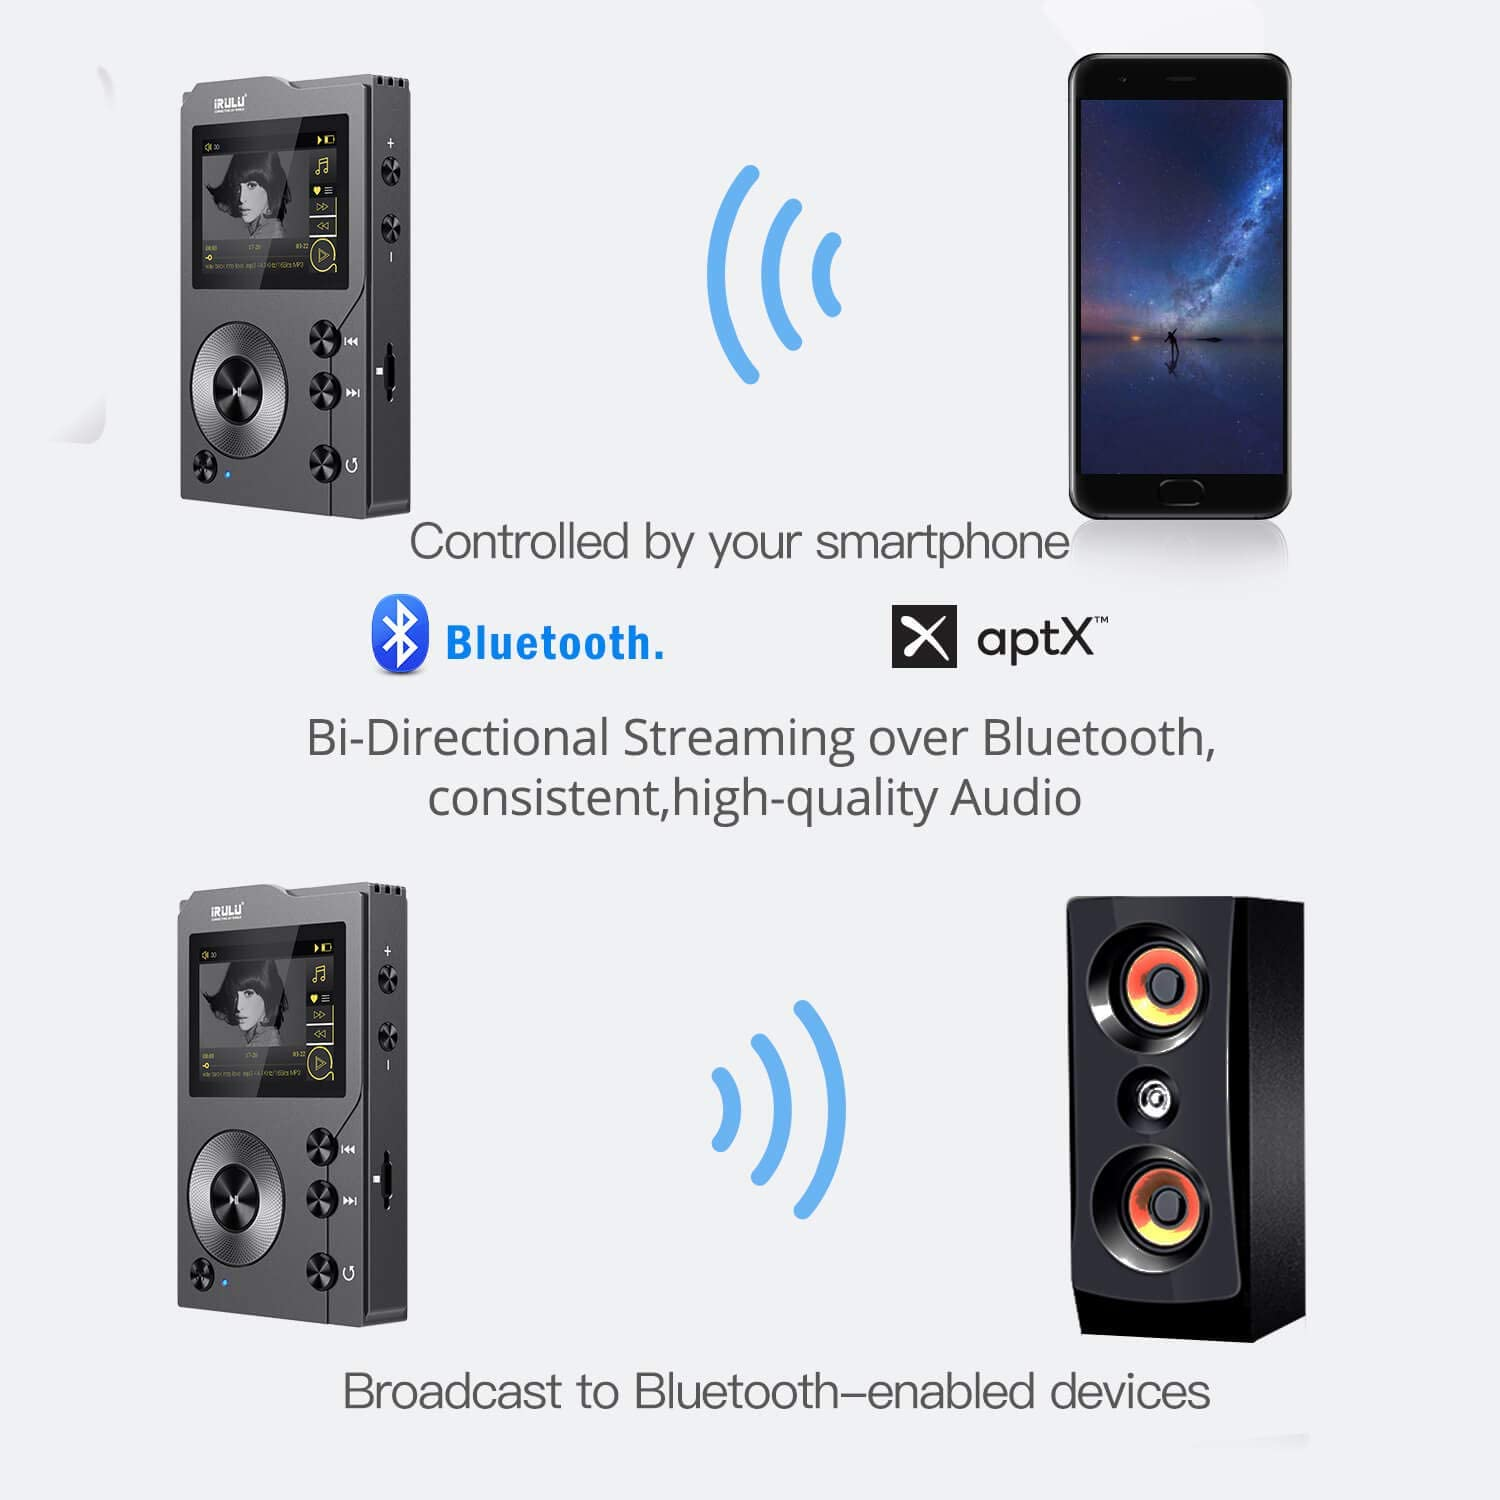 iRULU F20 HiFi MP3 Player with Bluetooth, Lossless DSD High Resolution Digital Audio Music Player, High-Res Portable Audio Player with 32GB Memory Card, Support up to 256GB